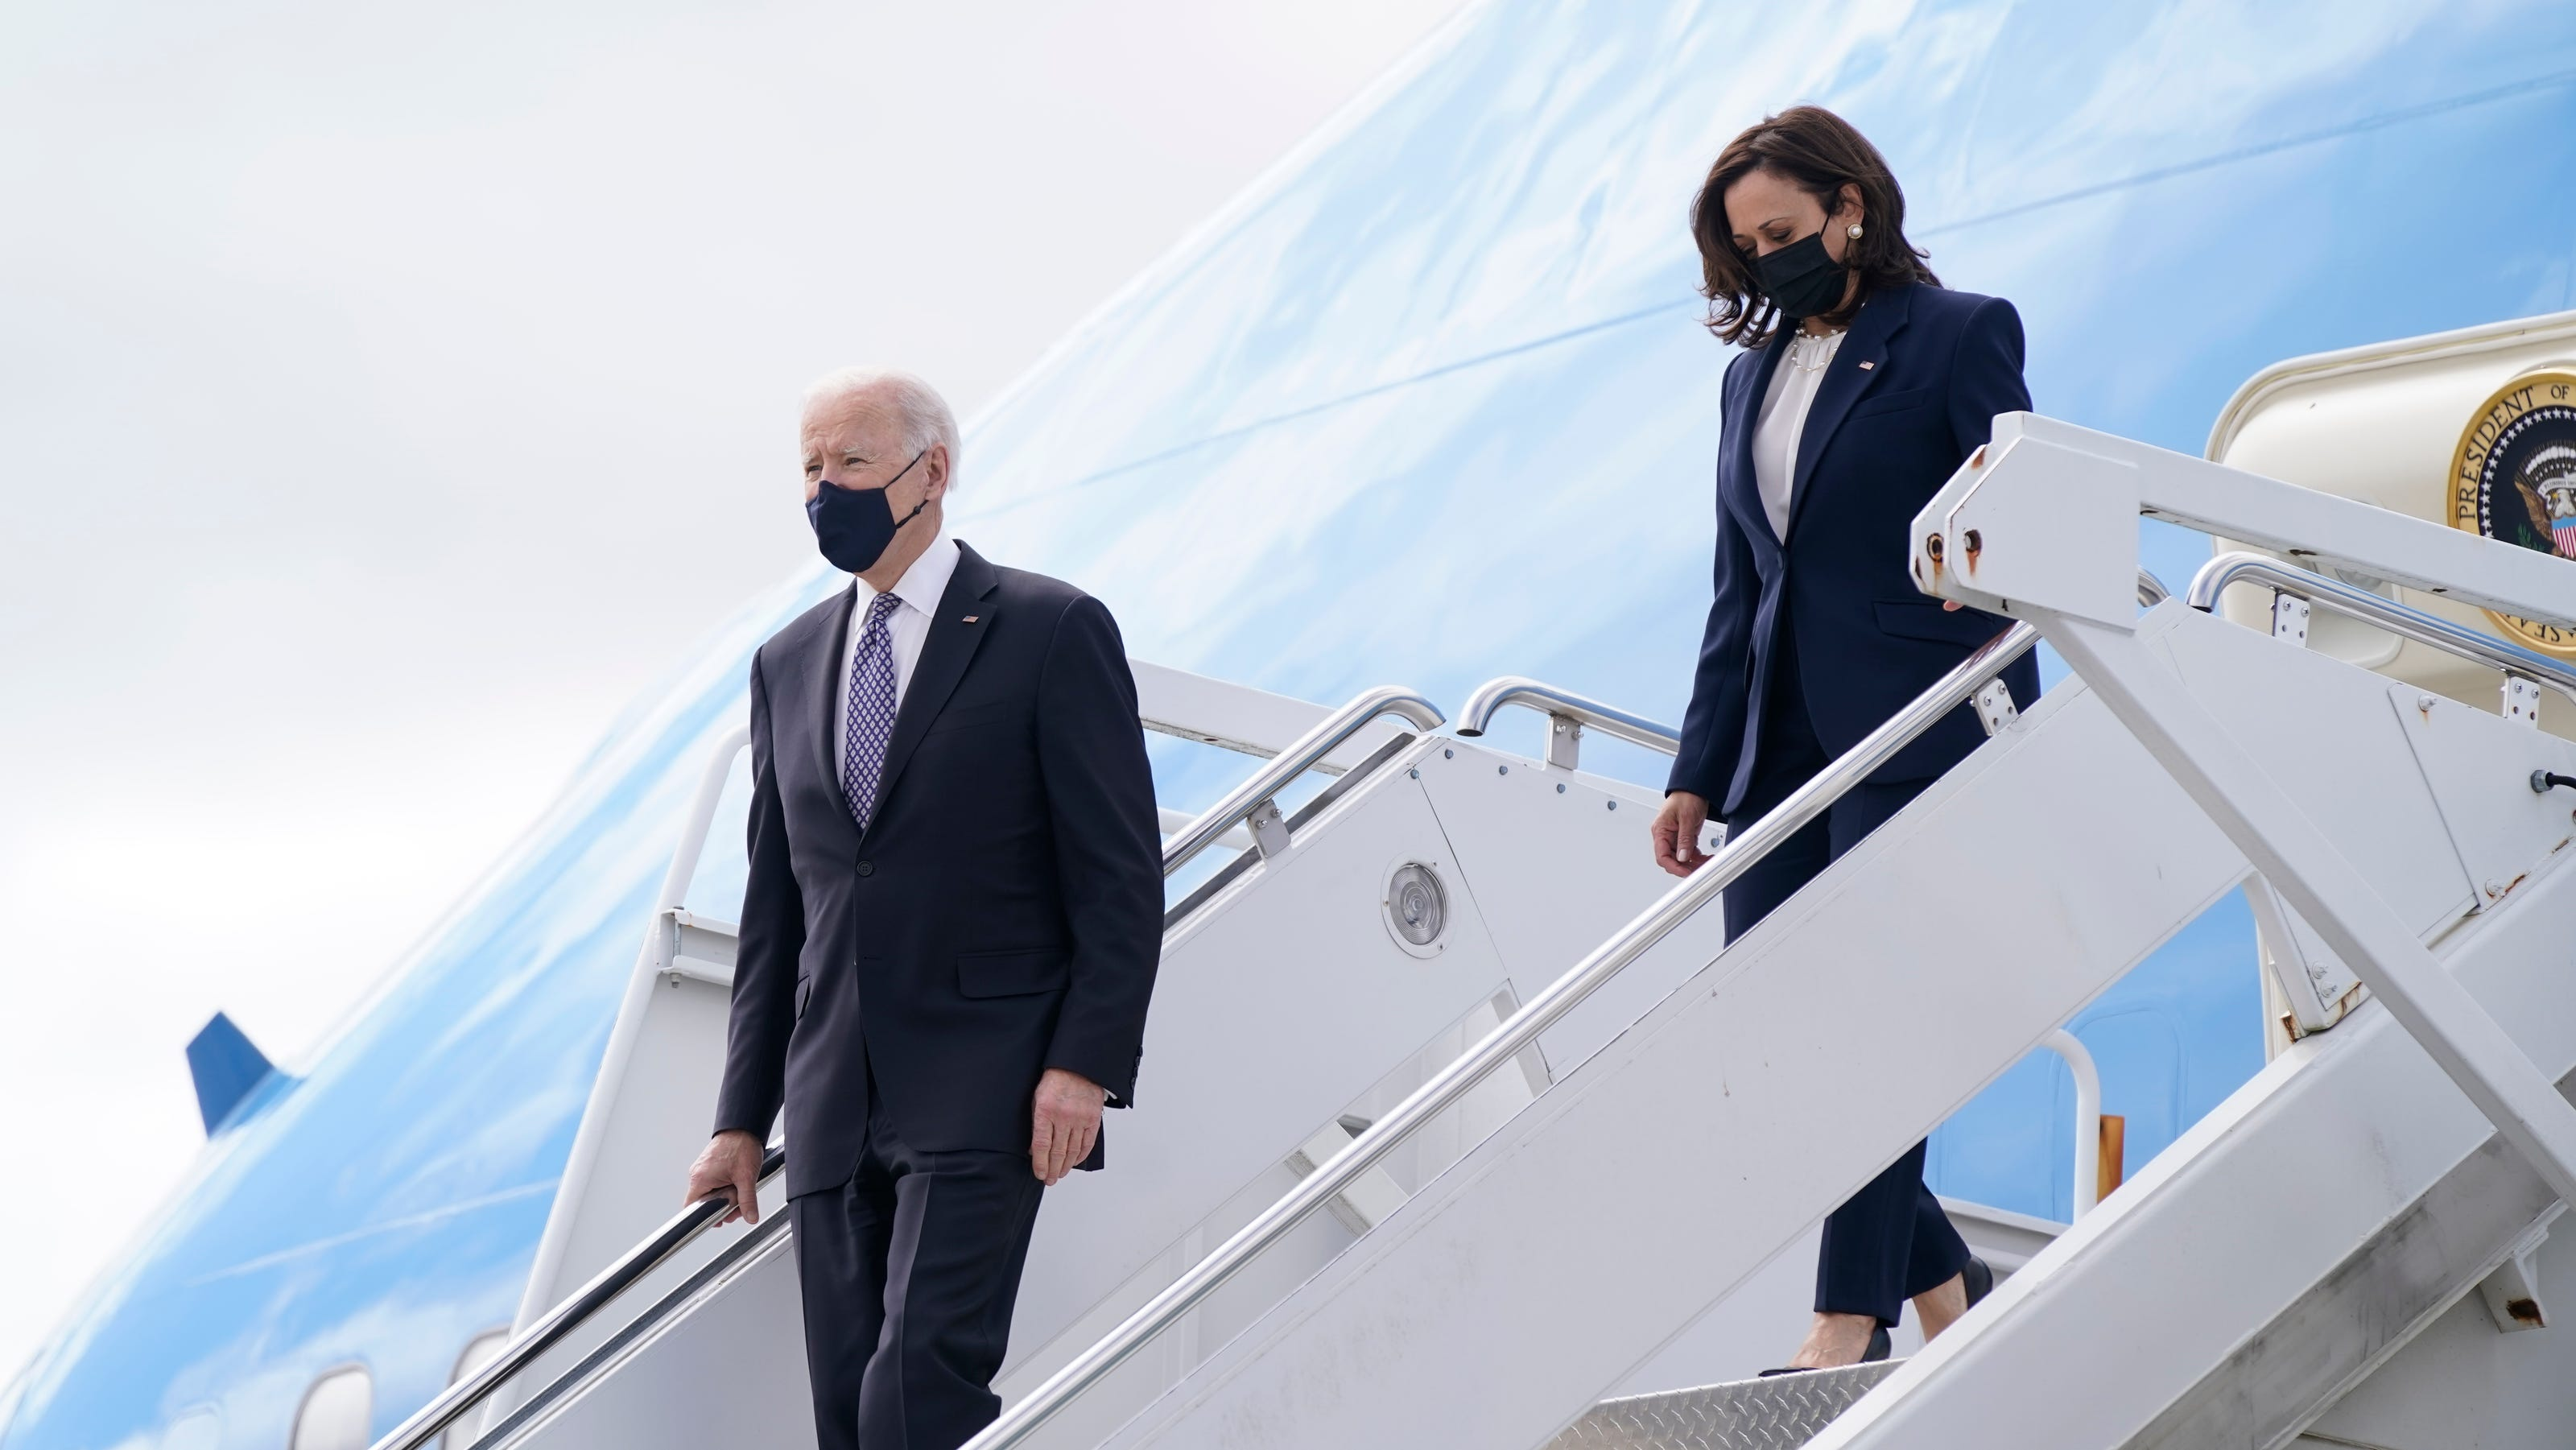 www.usatoday.com: Fact check: President Biden and Kamala Harris did not fly aboard Air Force One together